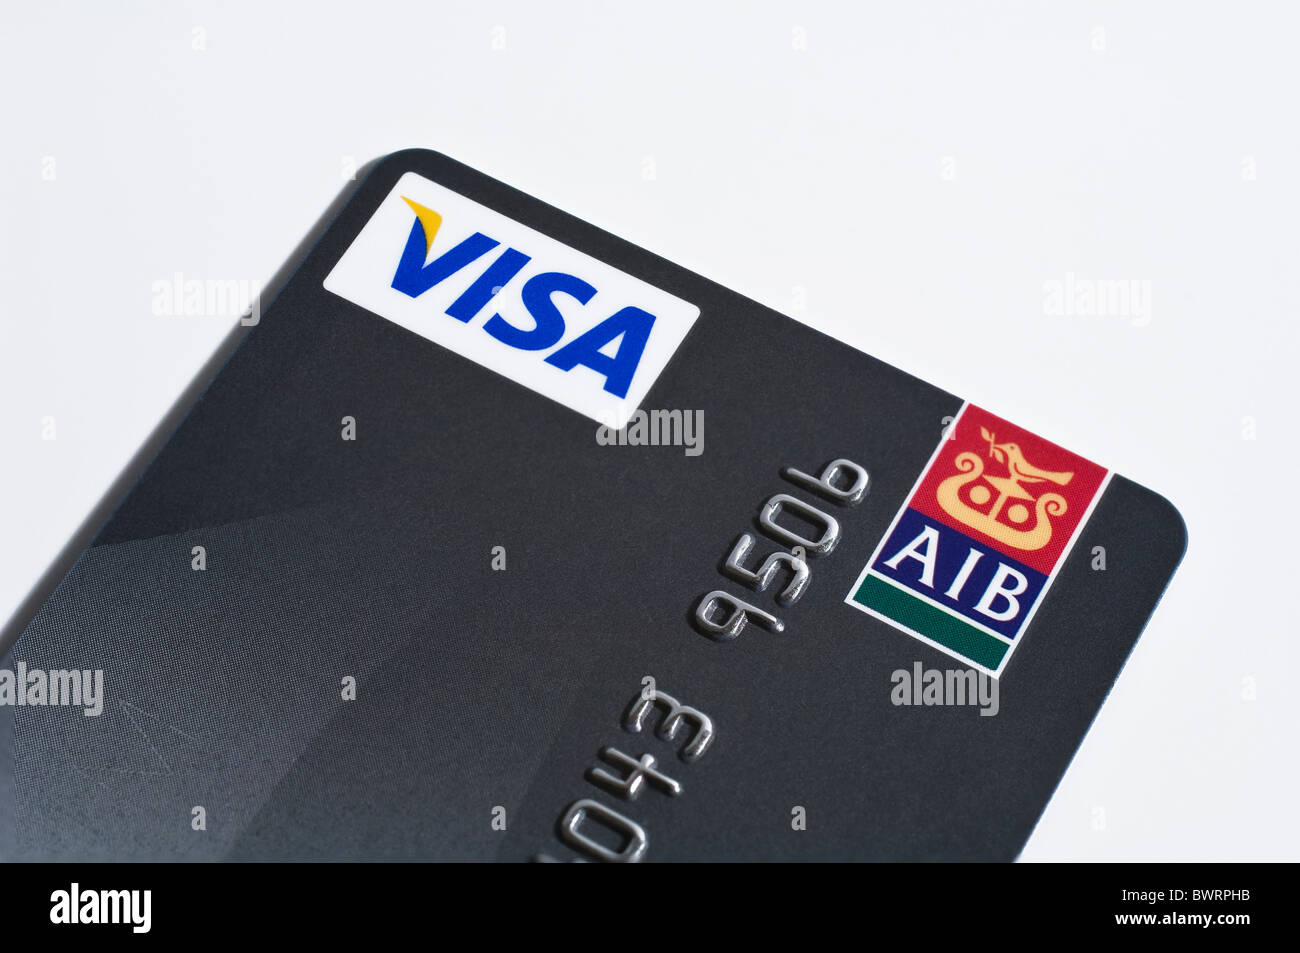 Detail of an Allied Irish Bank platinum Visa credit card - Stock Image